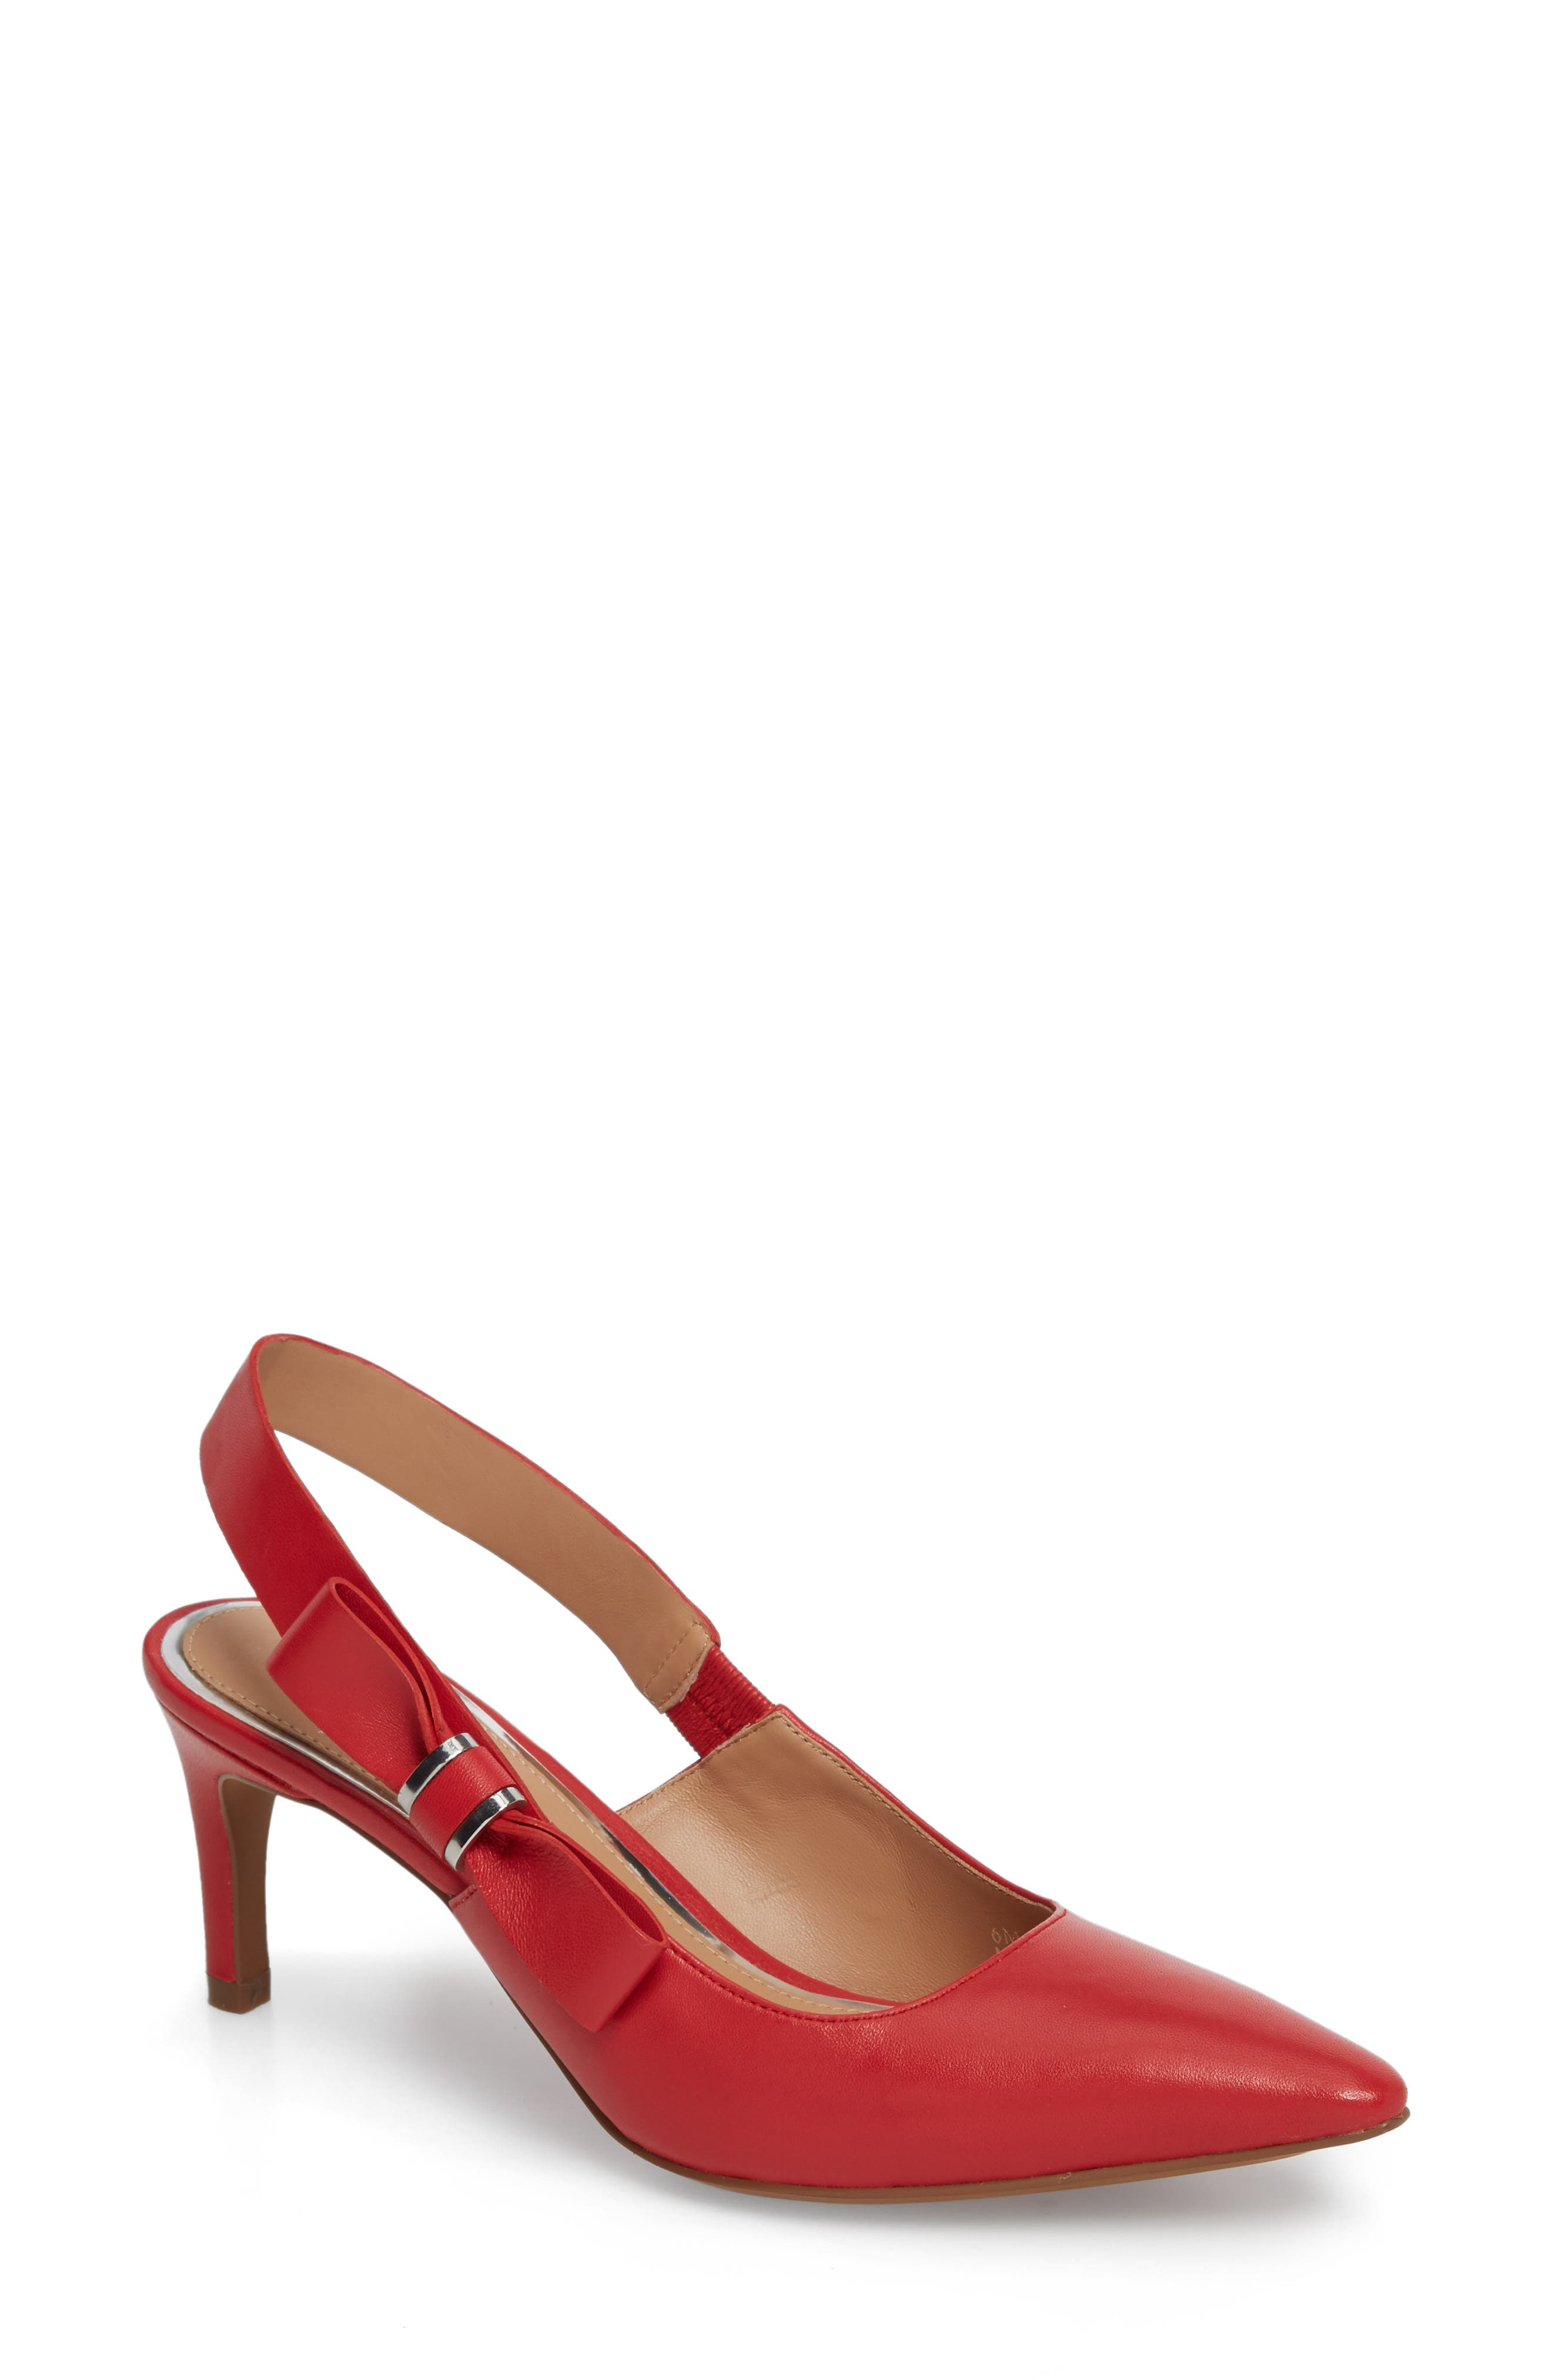 Women's Red Slingback Pumps | Nordstrom